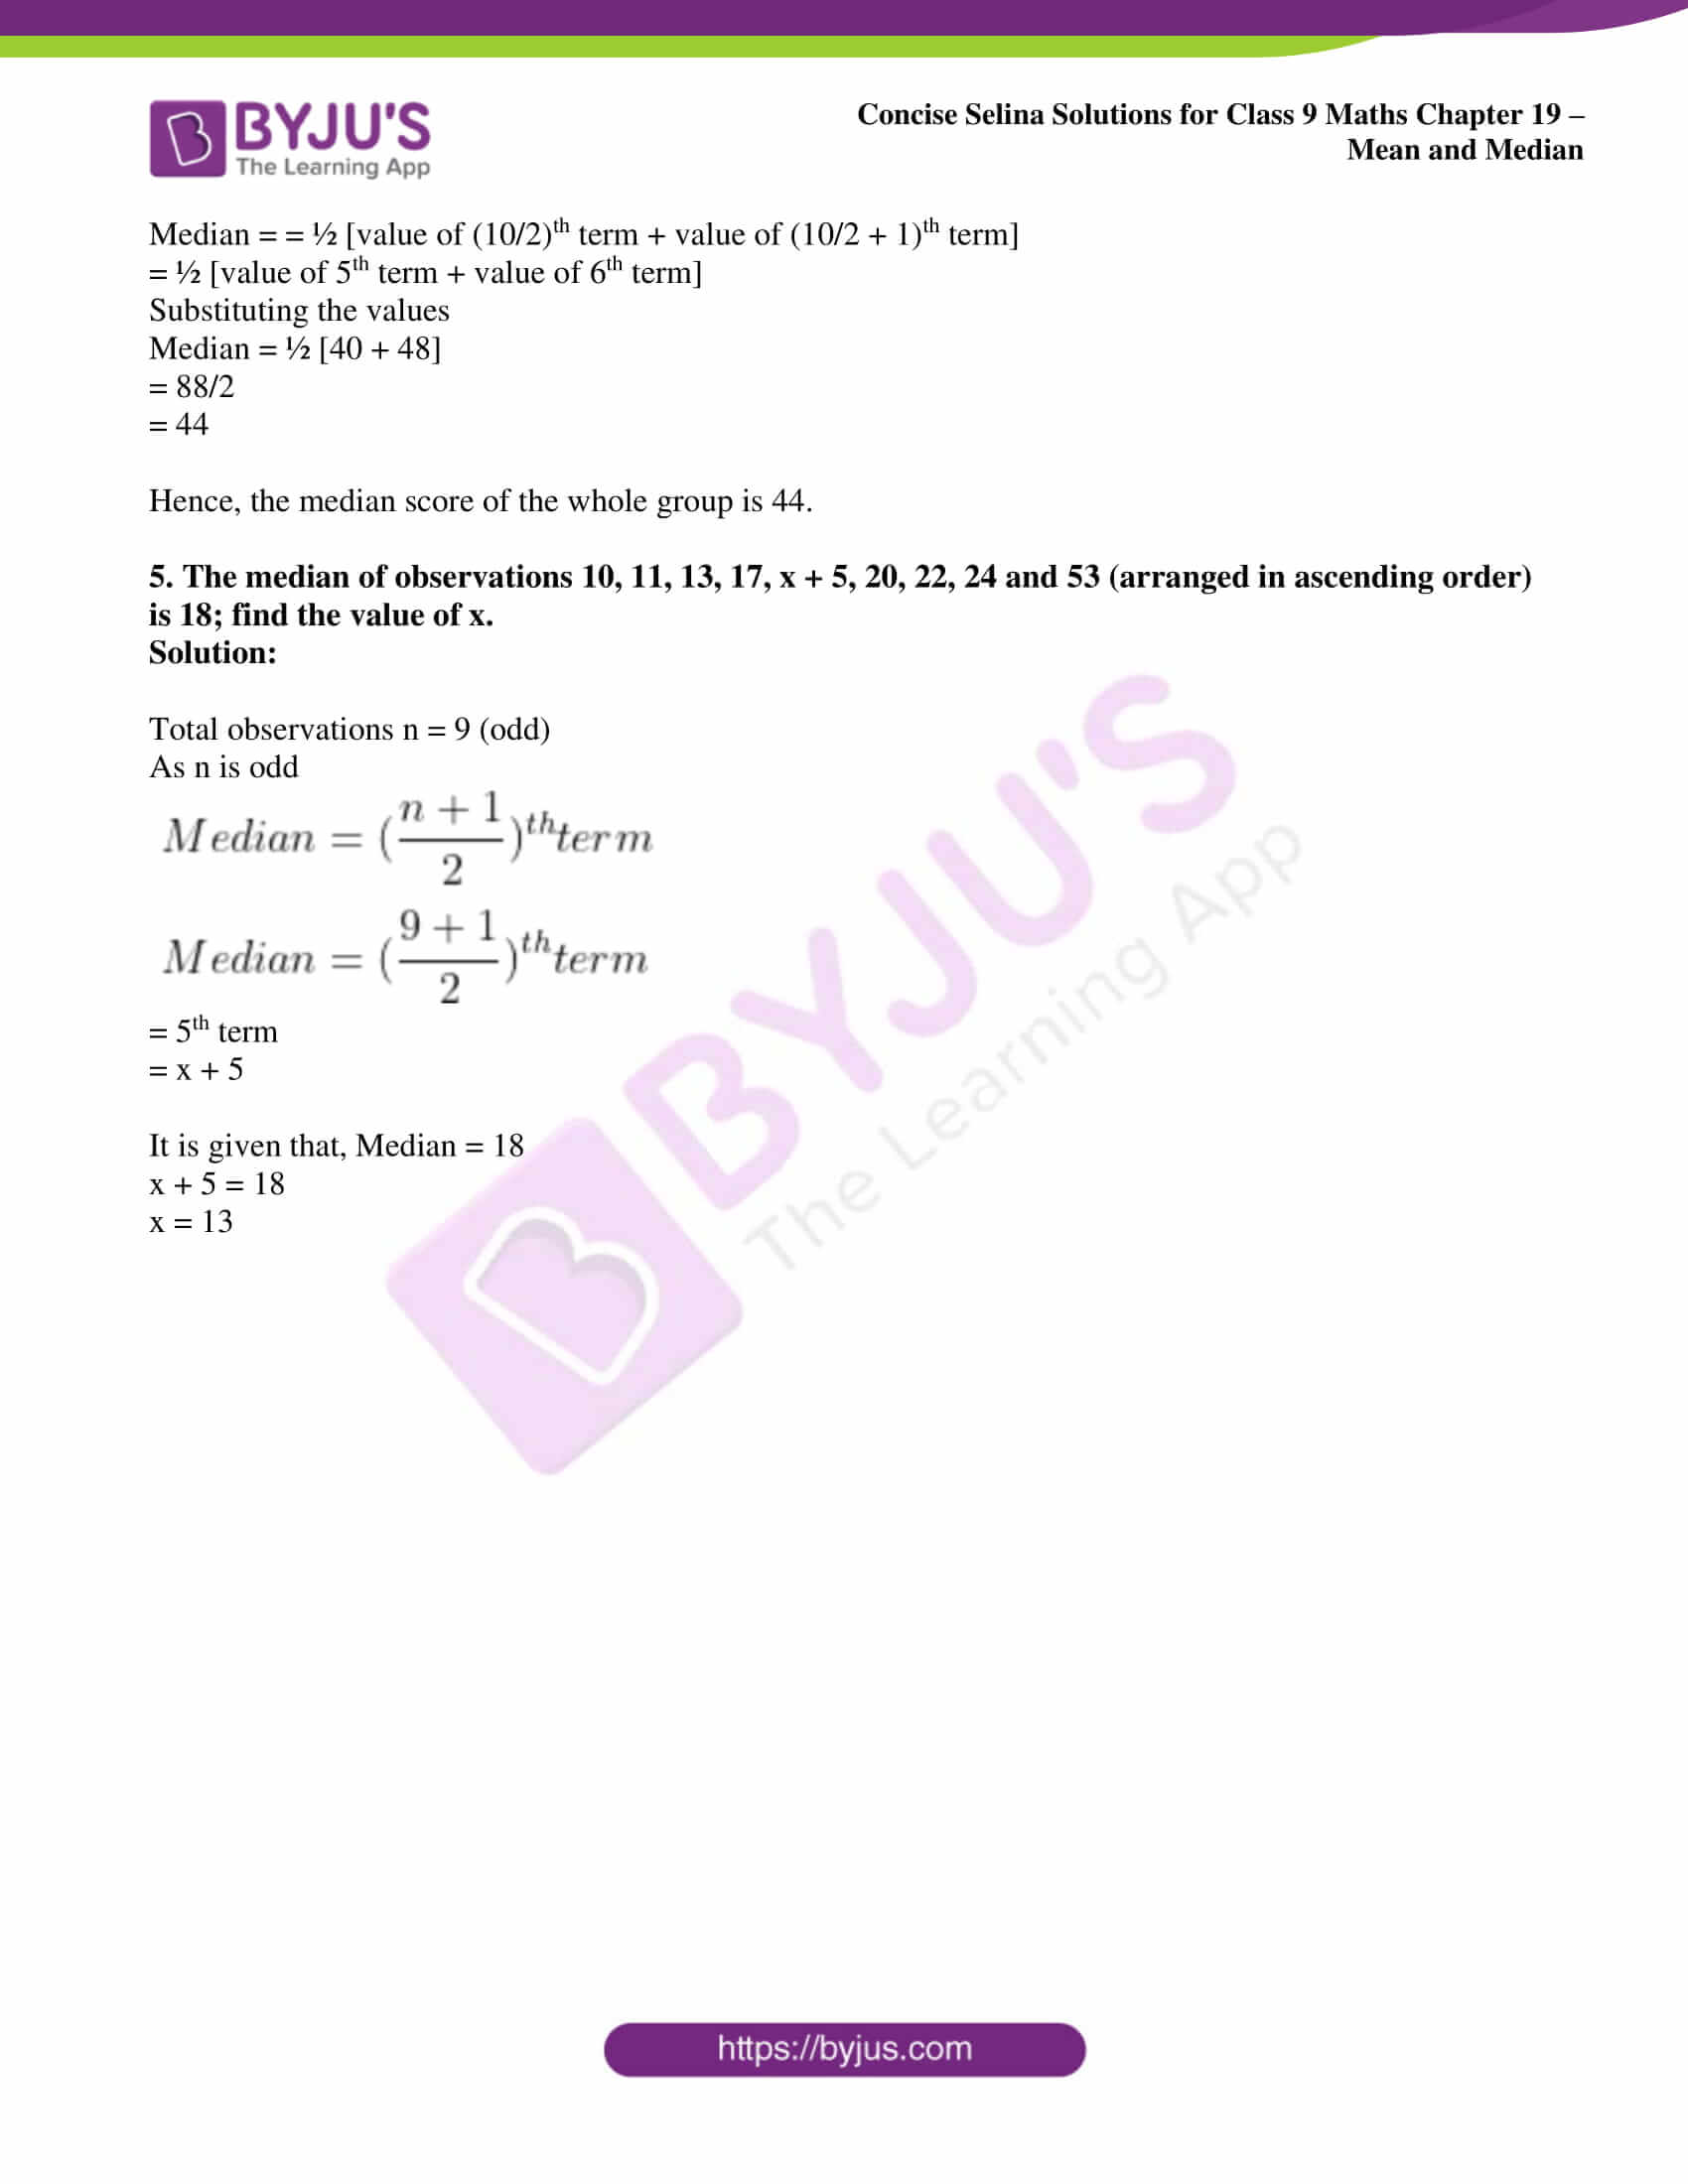 icse class 9 maths may10 selina solutions chapter 19 mean and median 08